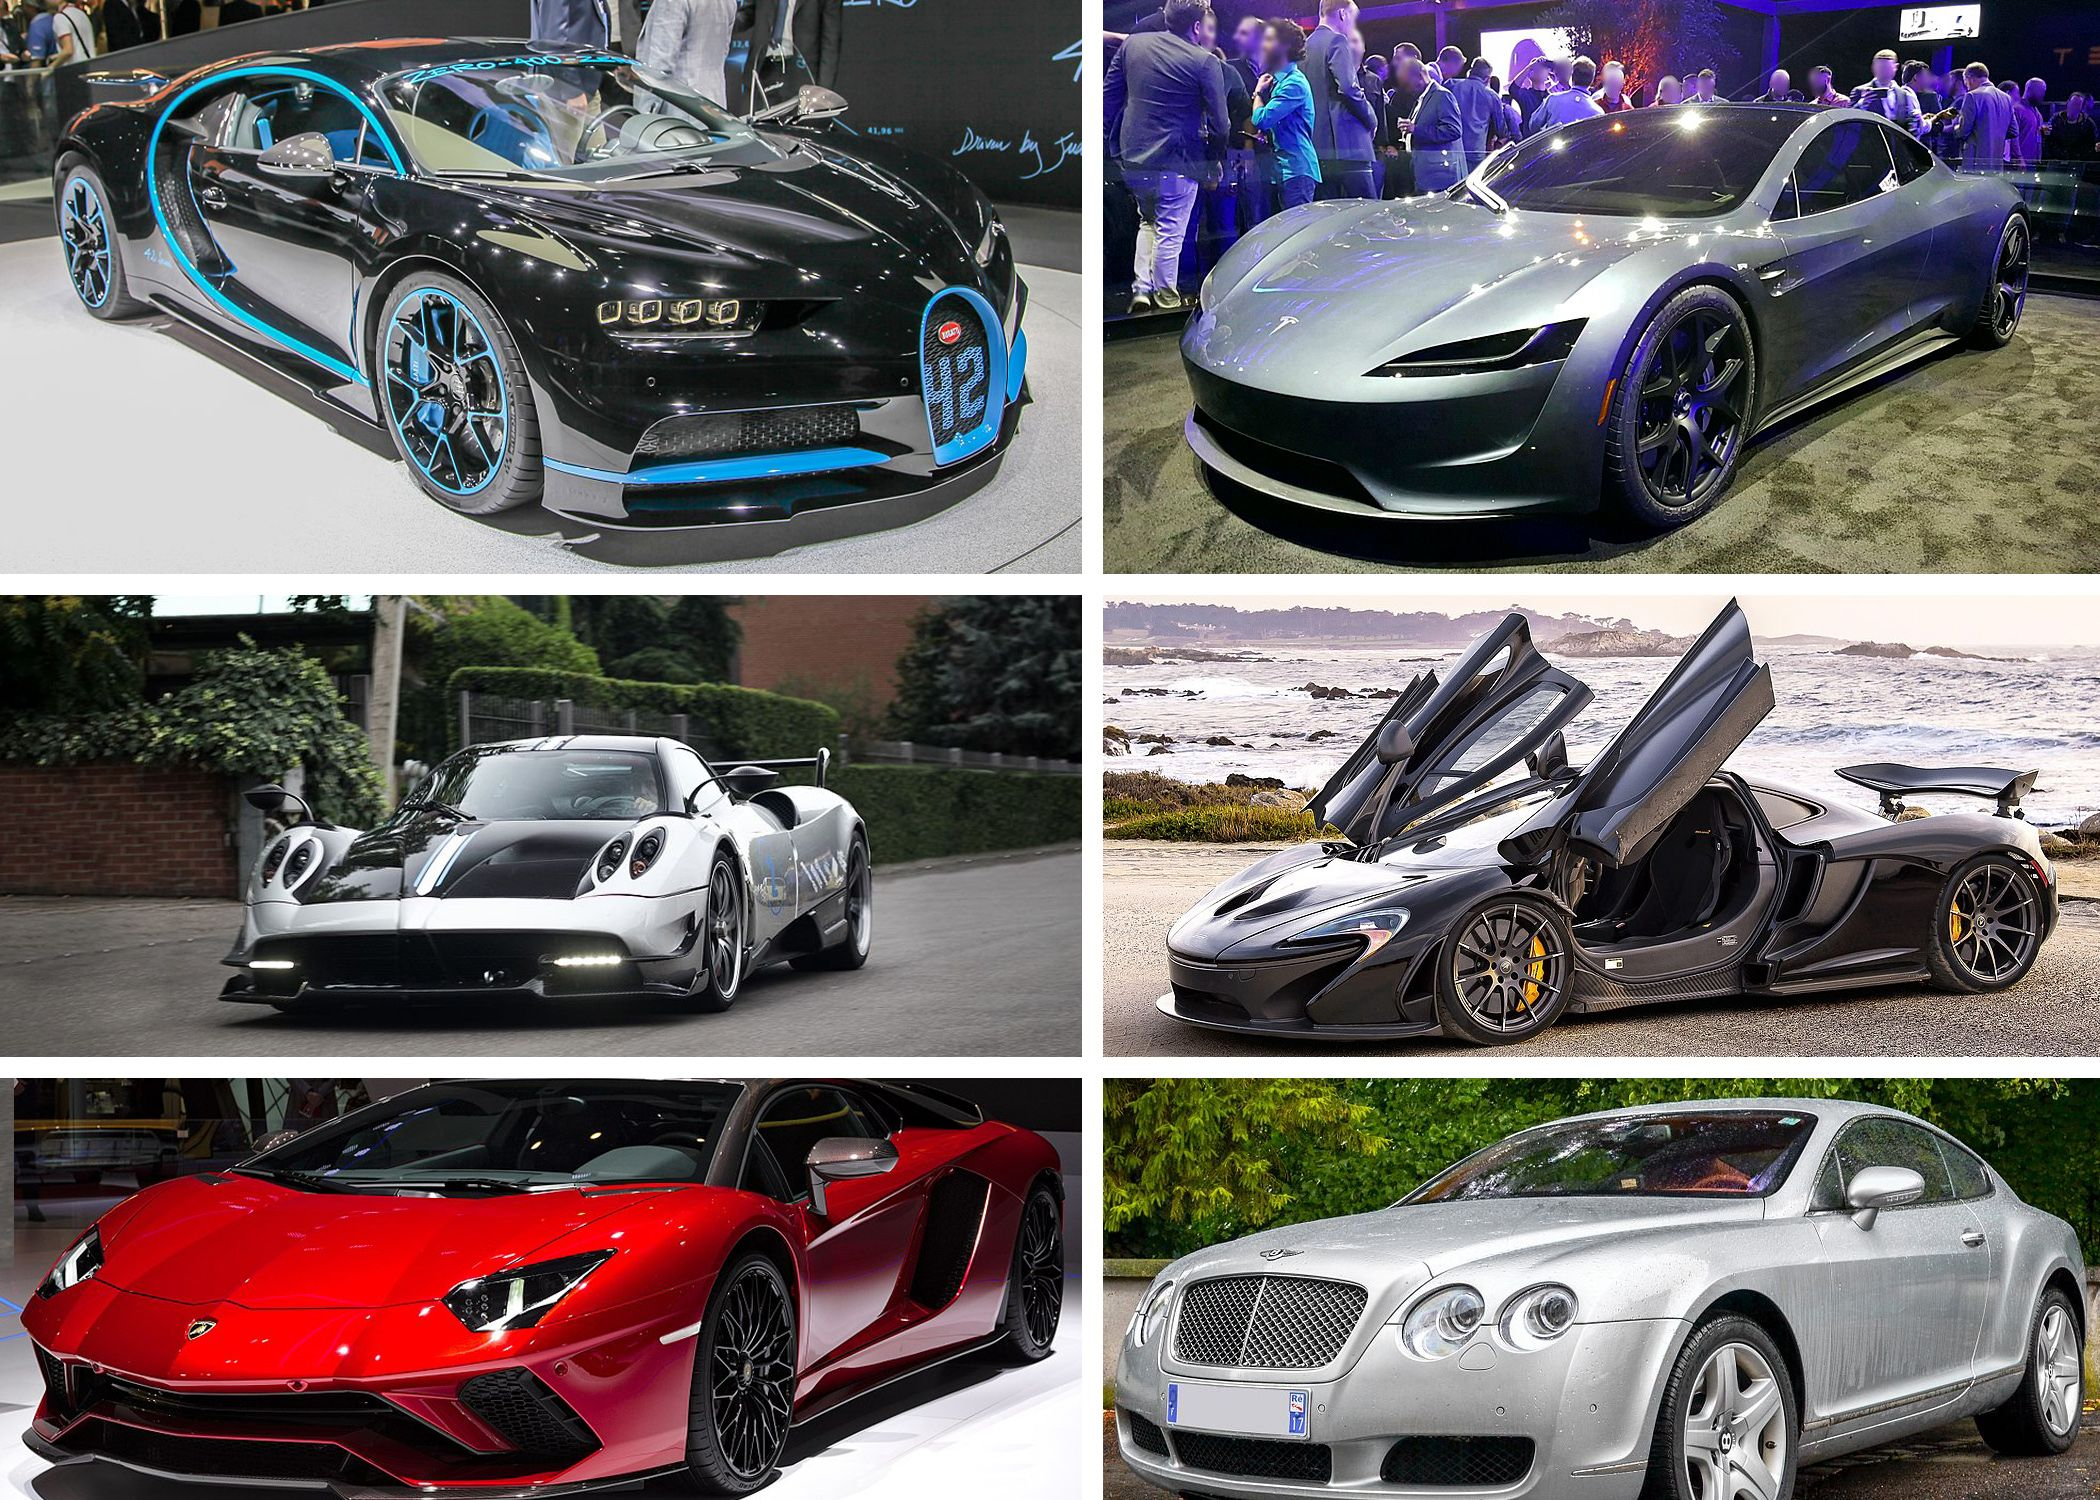 The Fastest Cars In The World From Tesla To Ferrari And More